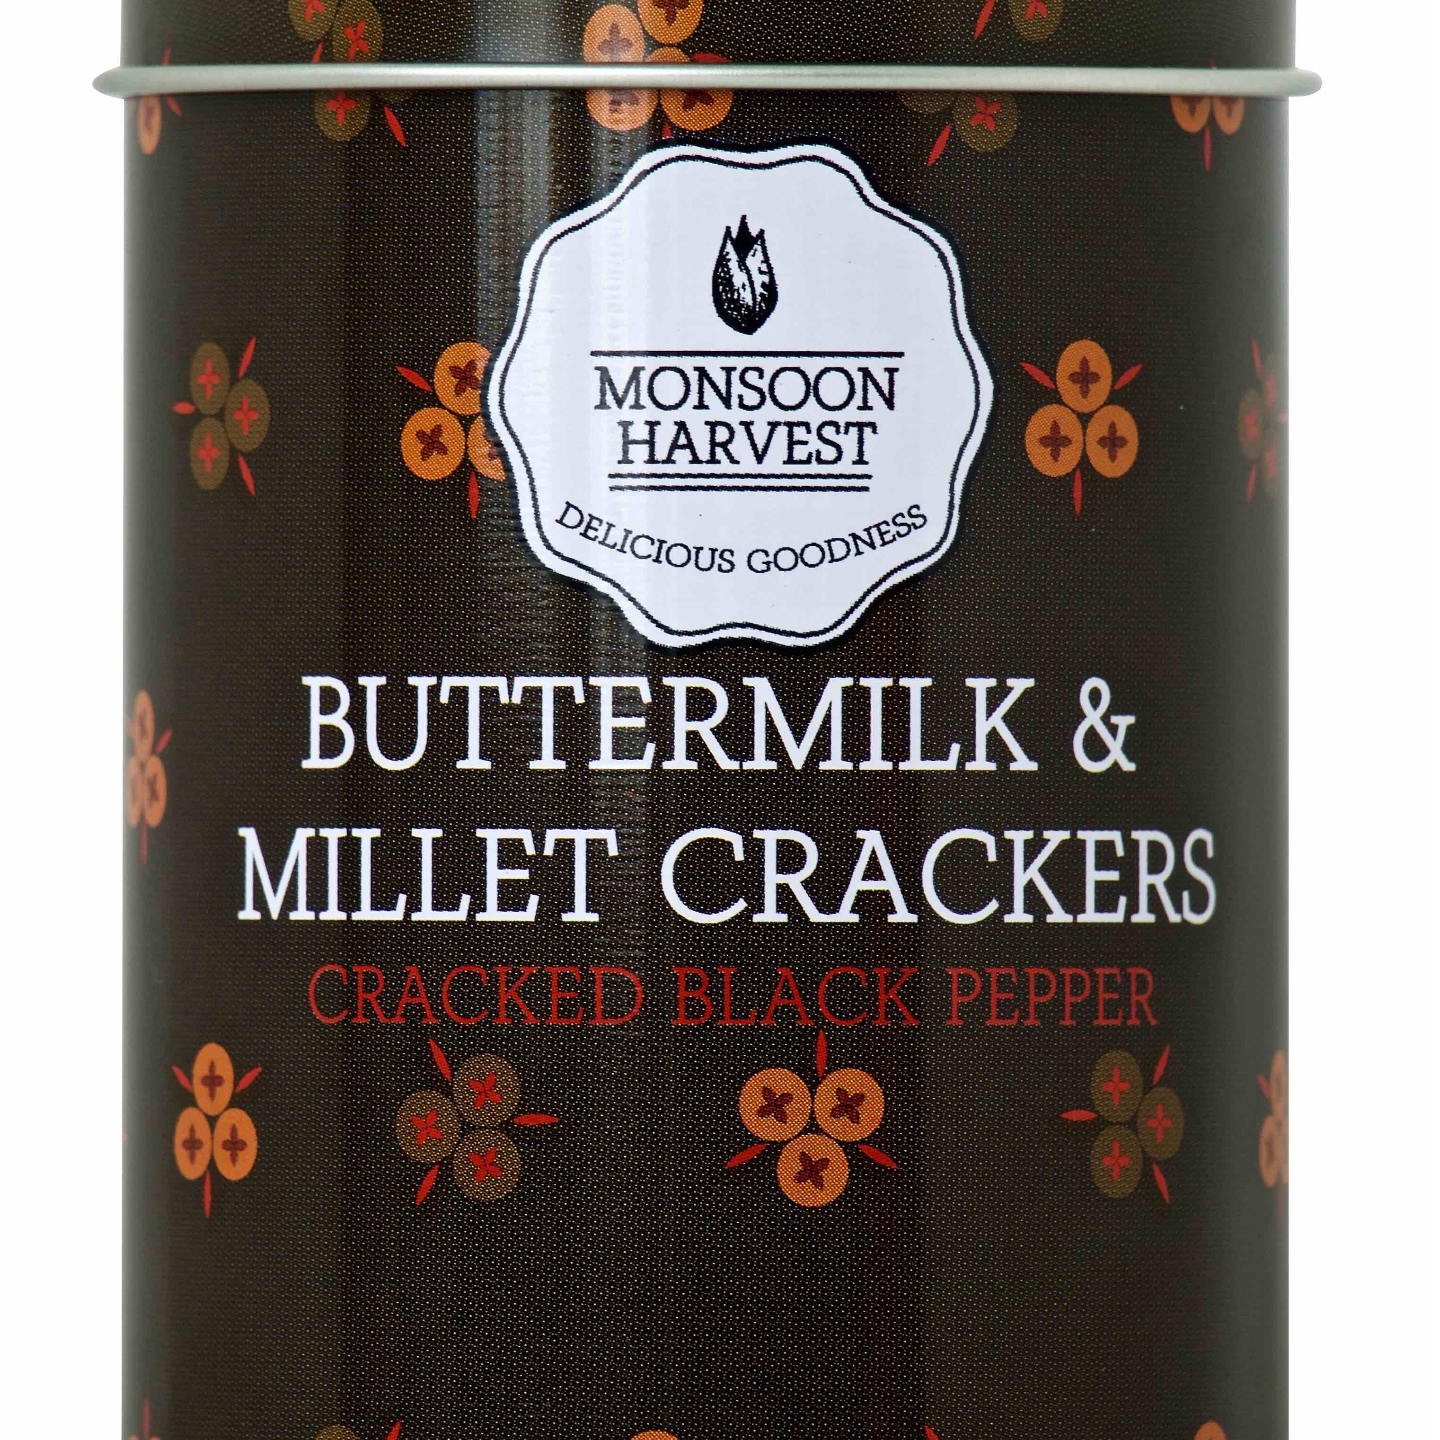 Buttermilk & Millet Crackers - Cracked Black Pepper